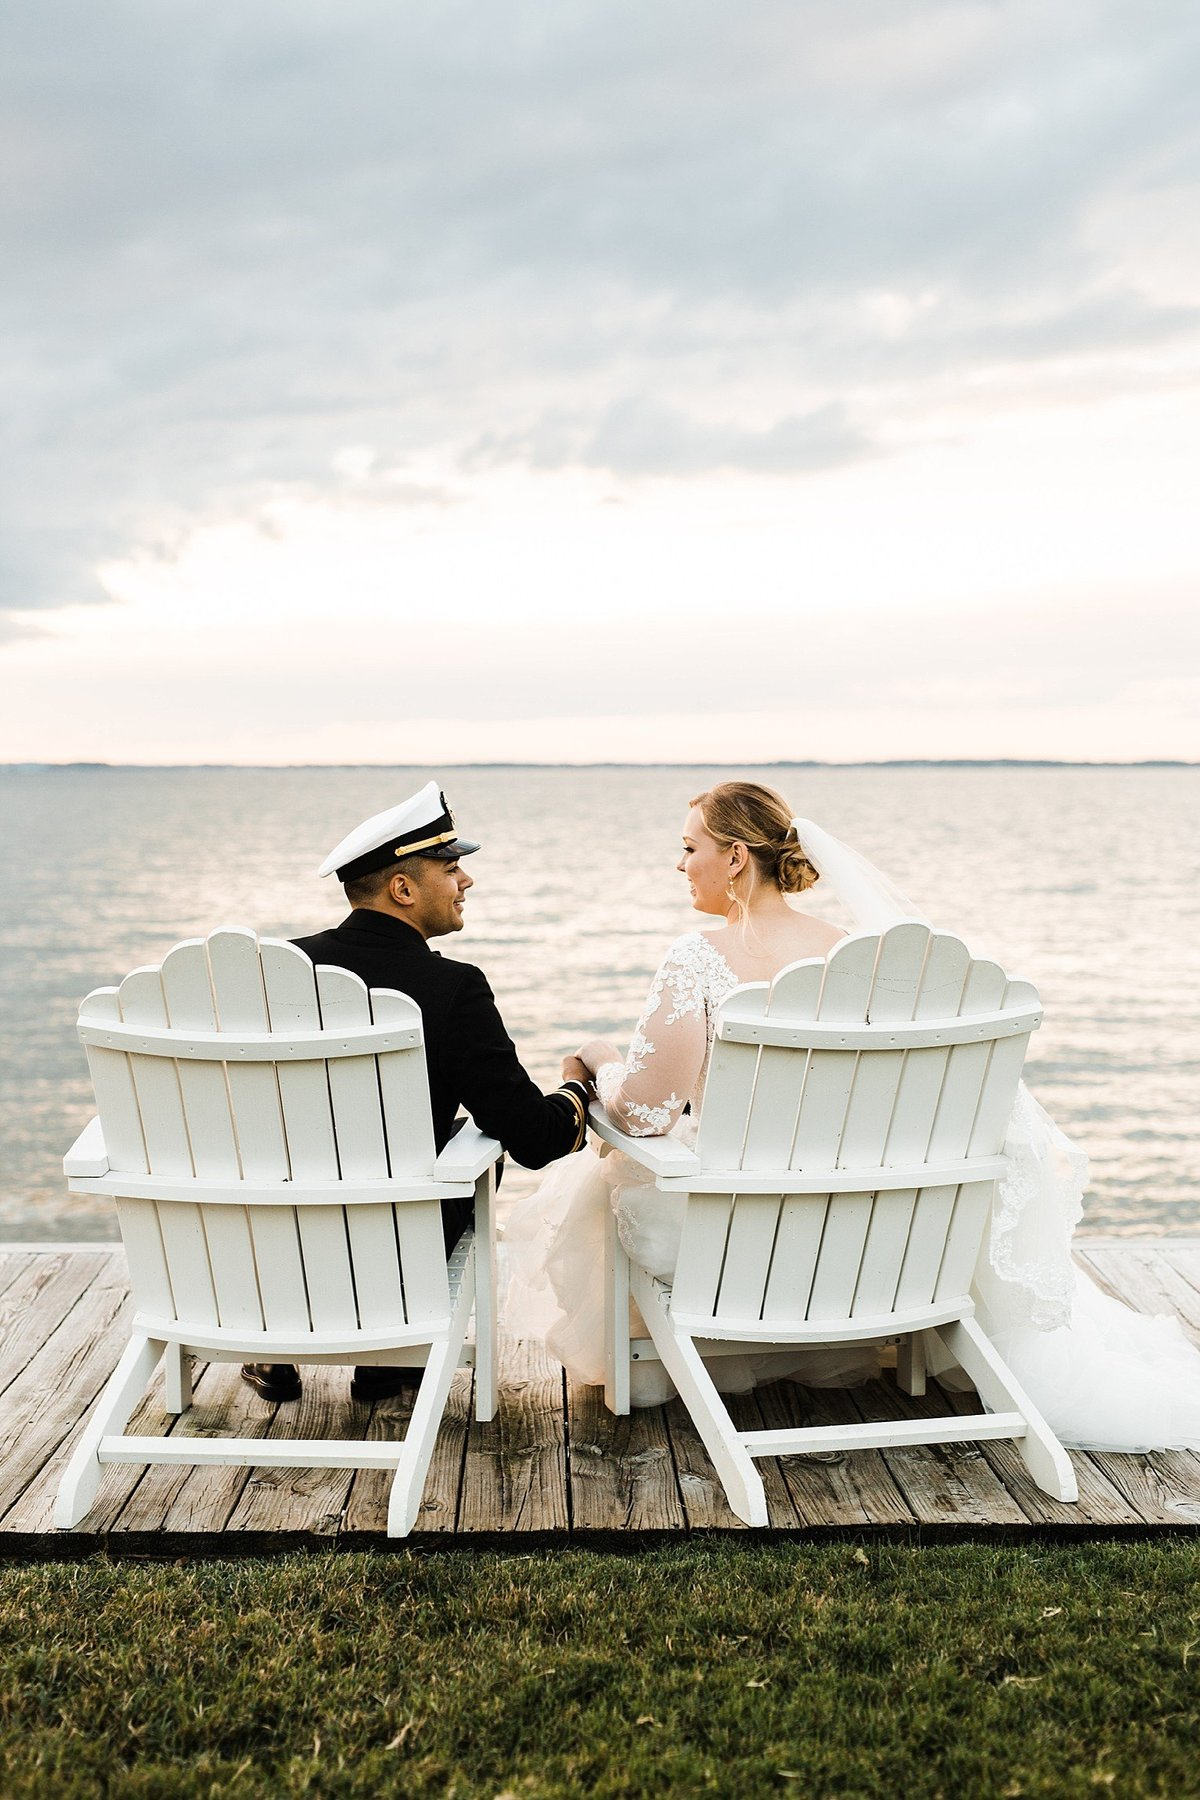 silver-swan-bayside-wedding-annapolis-wedding-photographer-rebecca-renner-photography_0003